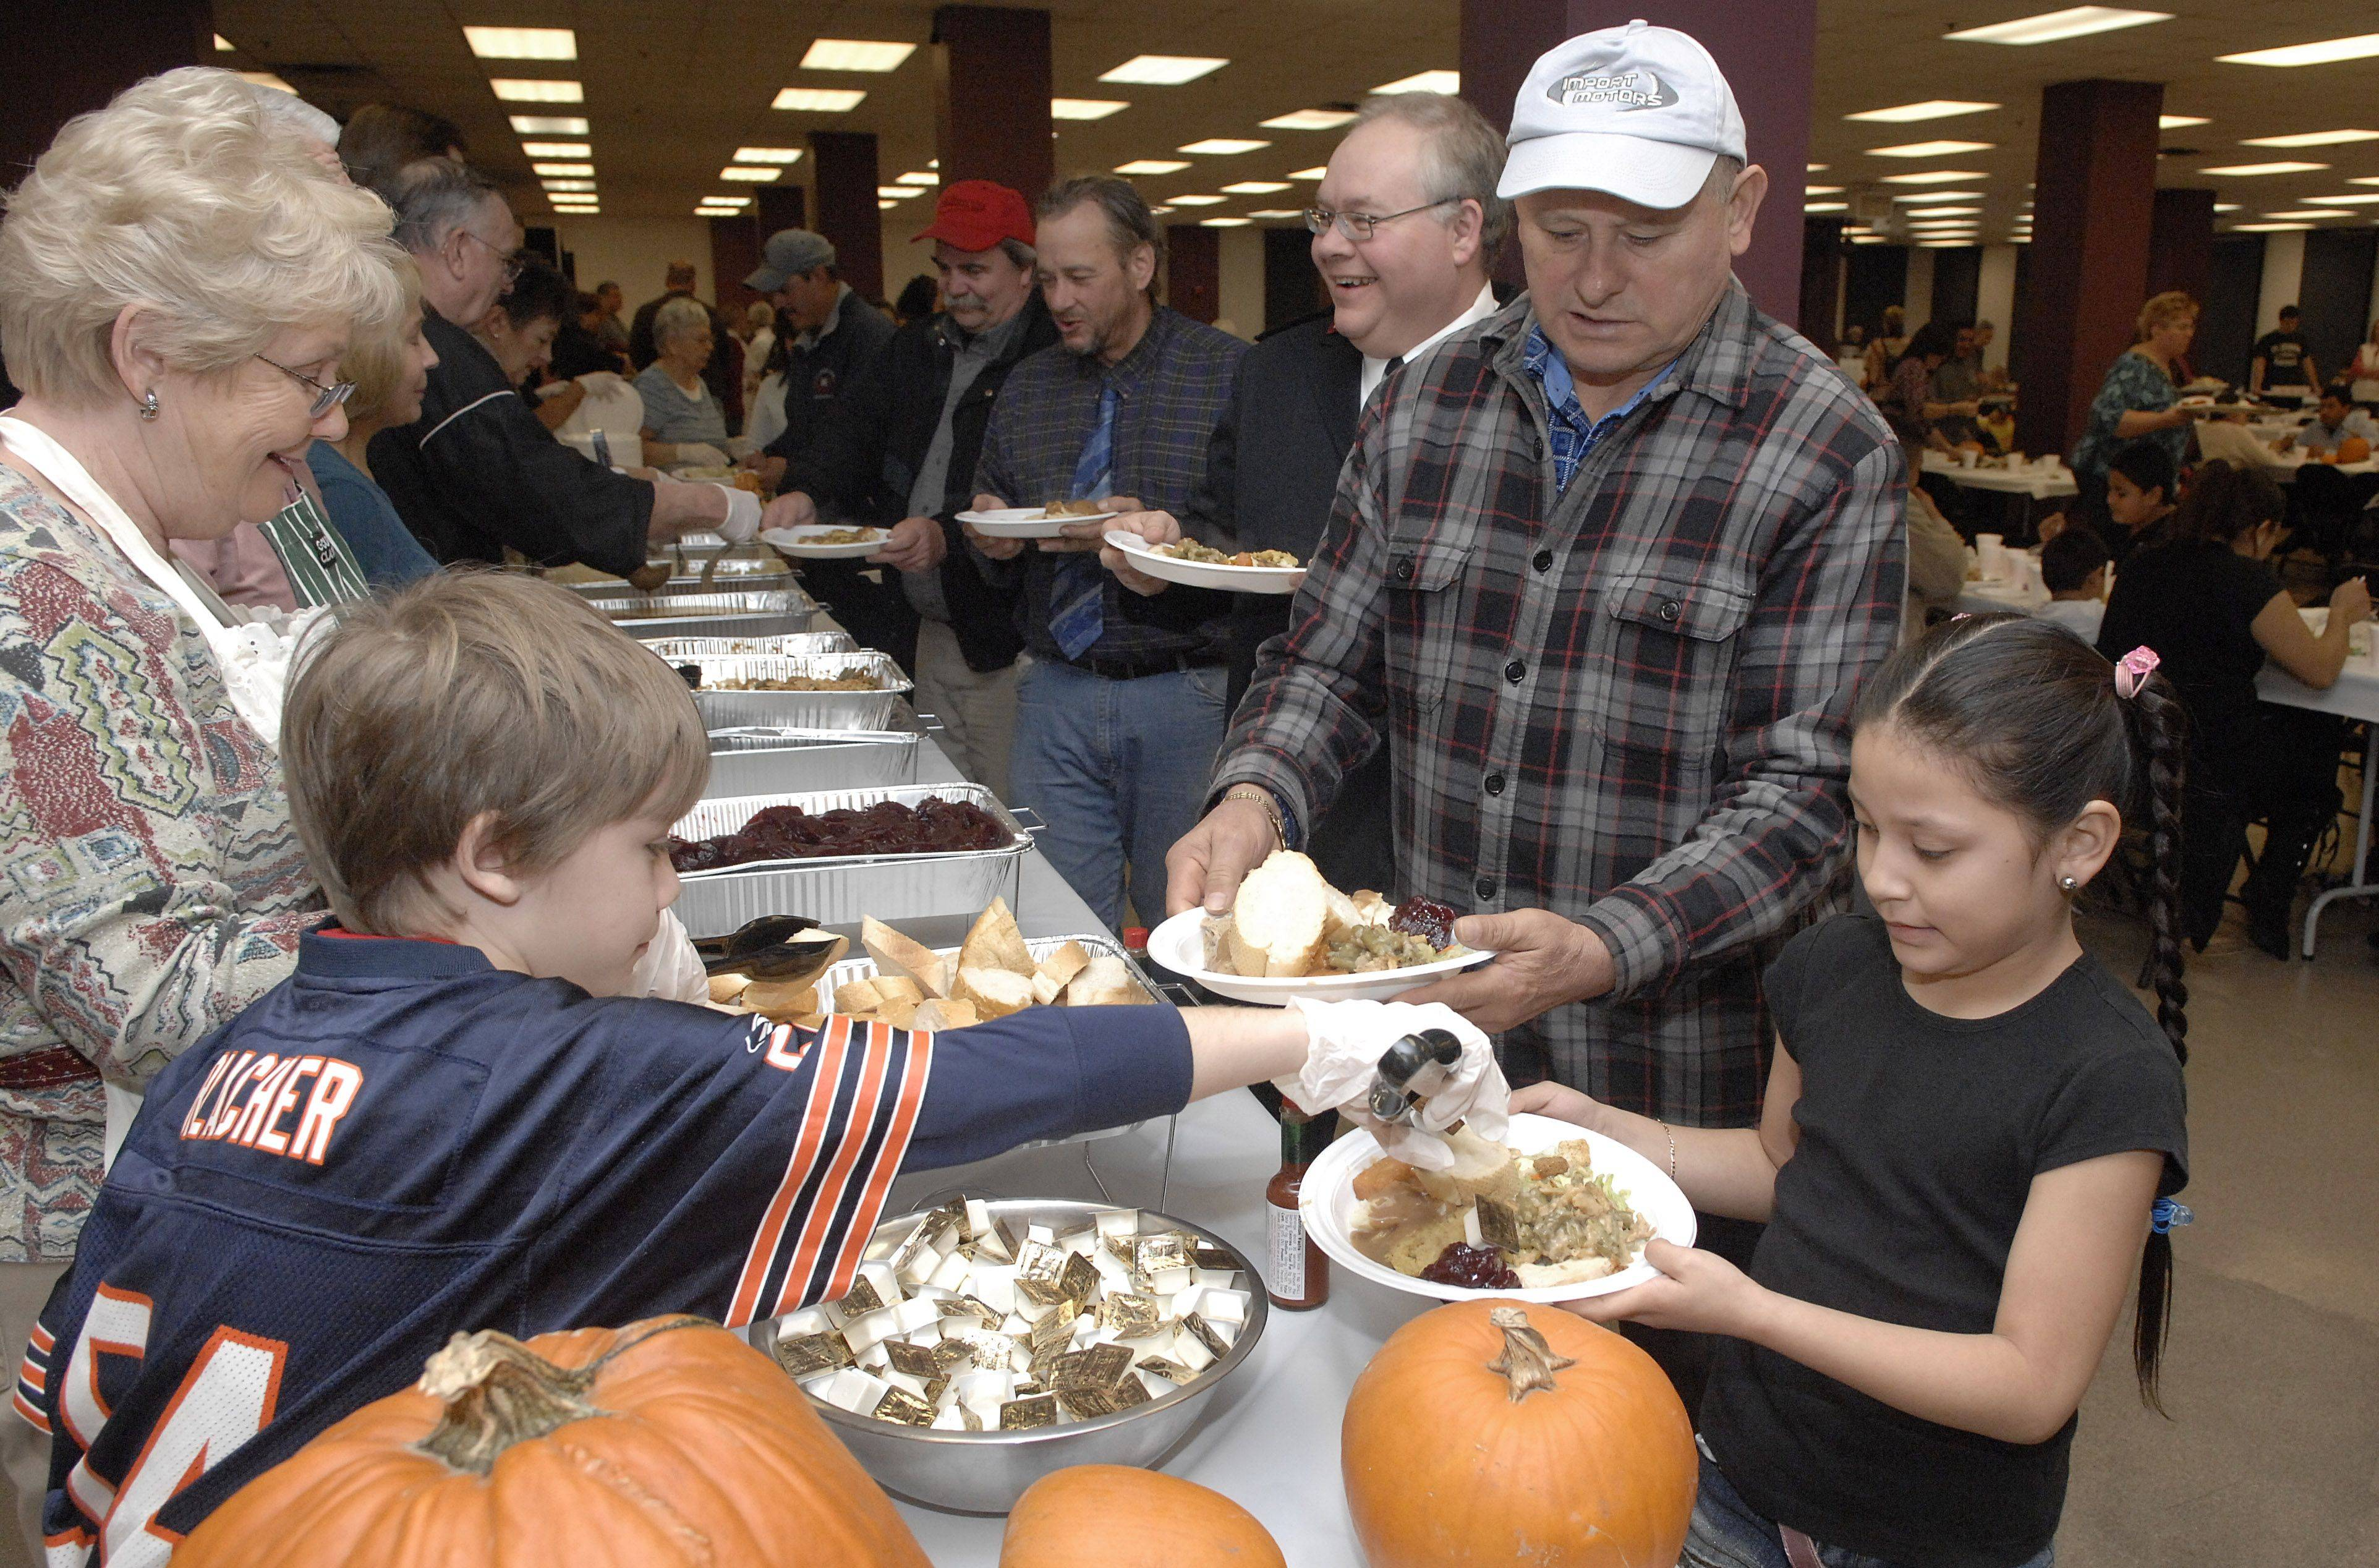 Mika Bradburn ,left, 9, of Downers Grove serves butter to Brianna Fernandez-Diaz ,right, 6, and her father, Ubaldo, of Elgin at the Thanksgiving Community Dinner at the Hemmens Cultural Center in Elgin. Mika was volunteering with his grandparents Ruth and John Bradburn of Elgin.